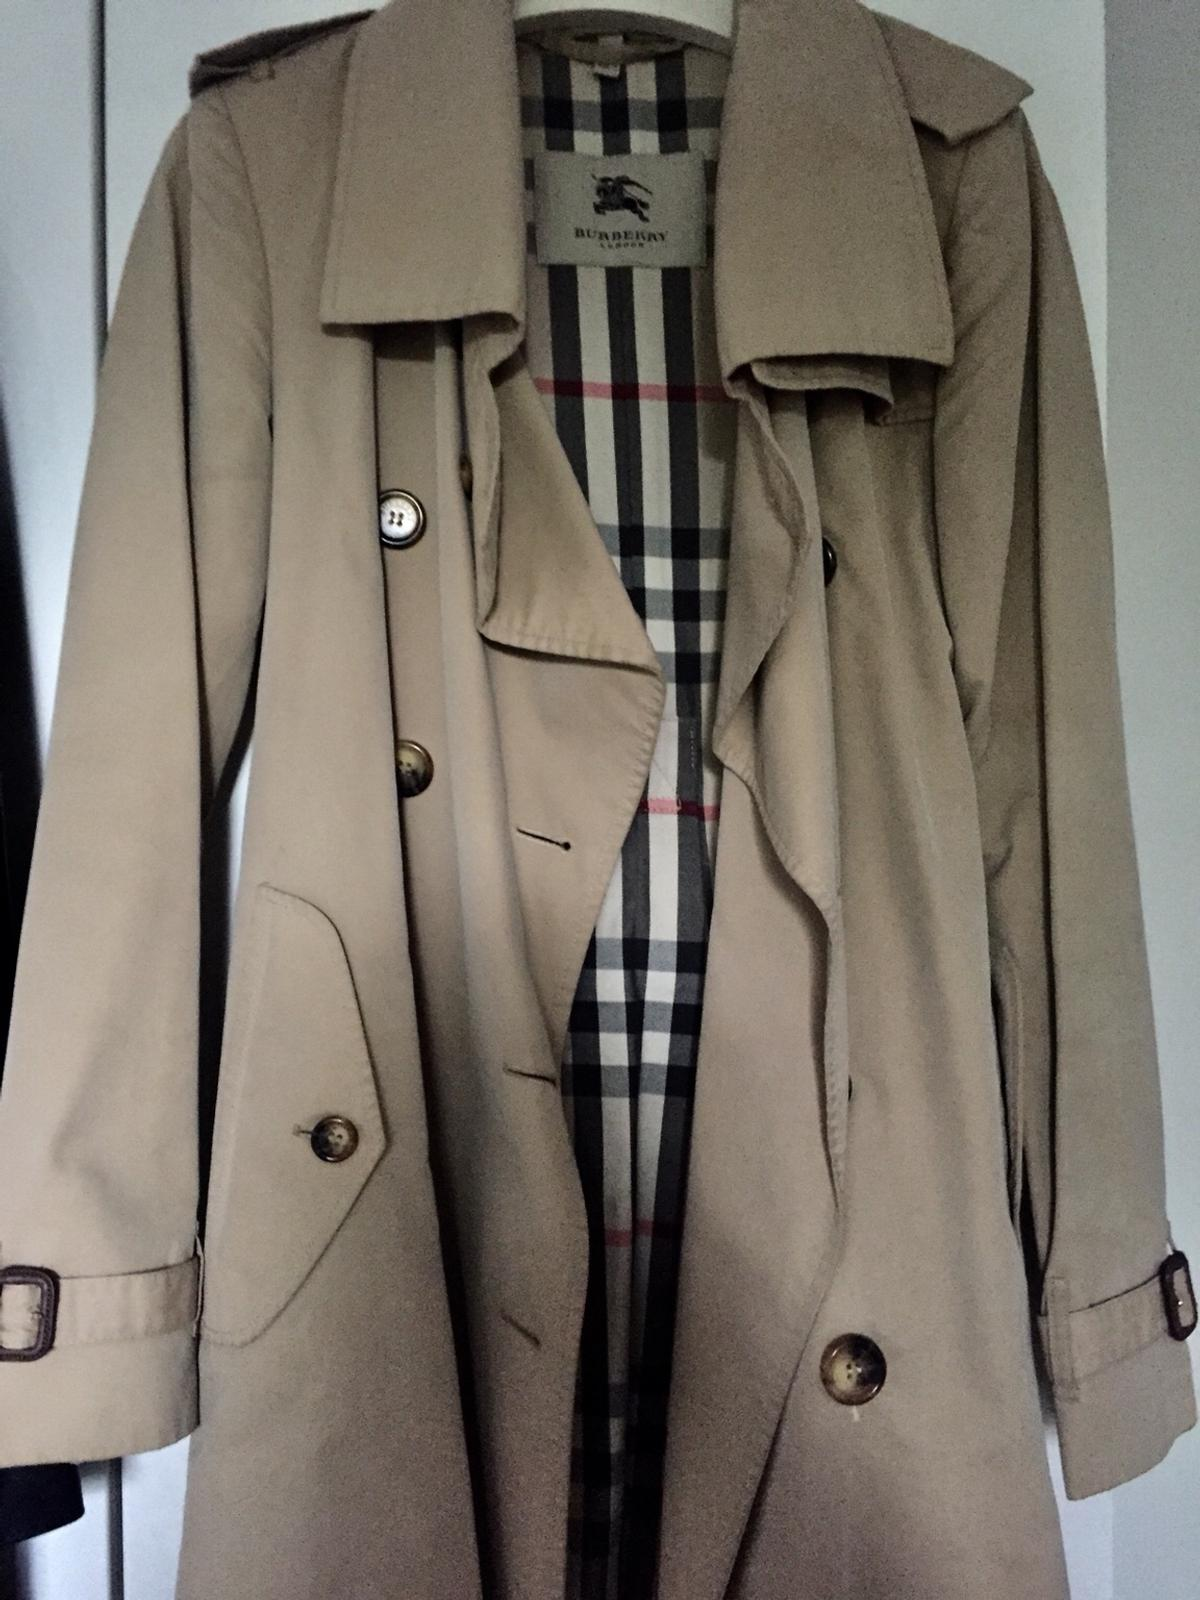 Beige Vintage Burberry trench coat